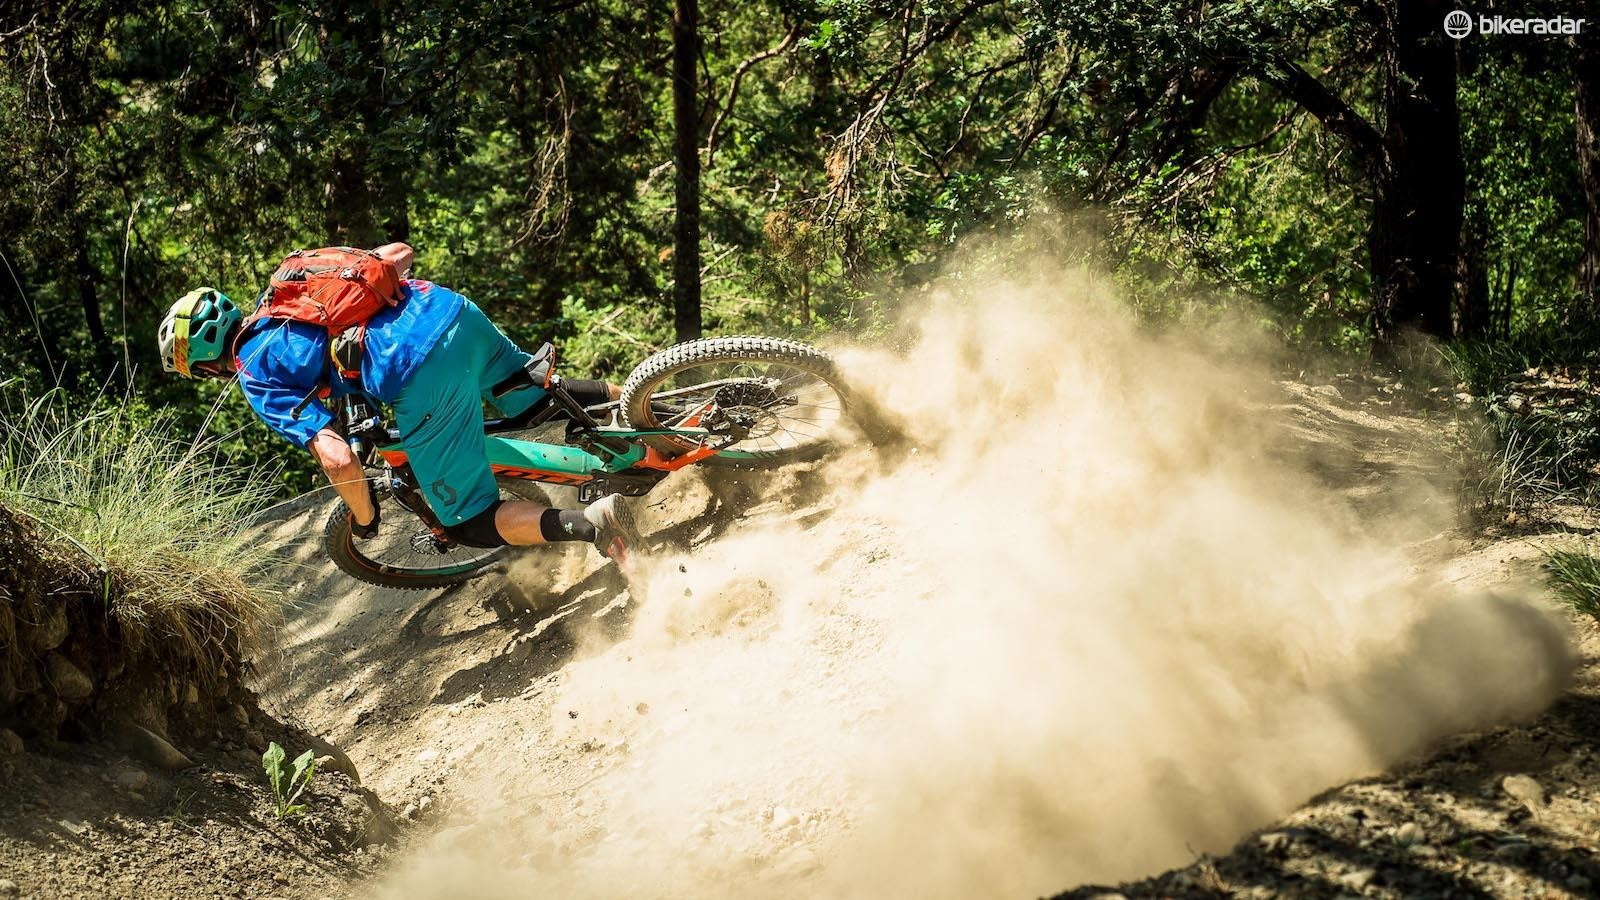 Grippy tyres and a planted feel allowed me to push harder in the loose conditions